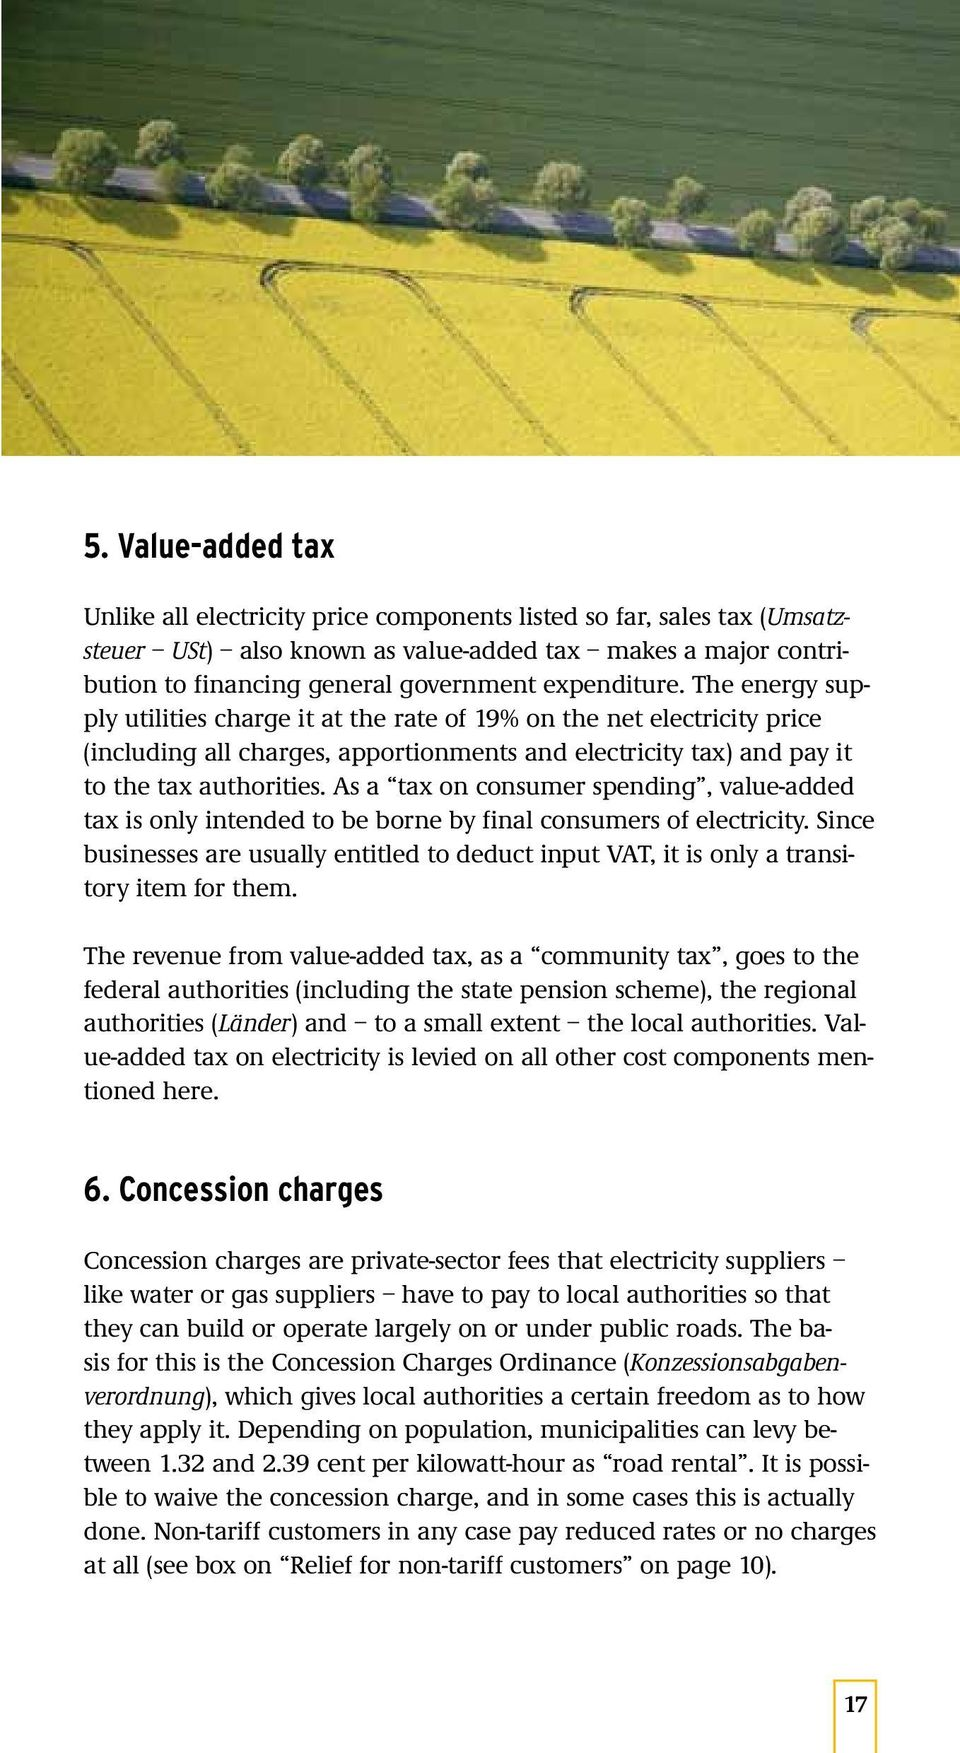 As a tax on consumer spending, value-added tax is only intended to be borne by final consumers of electricity.